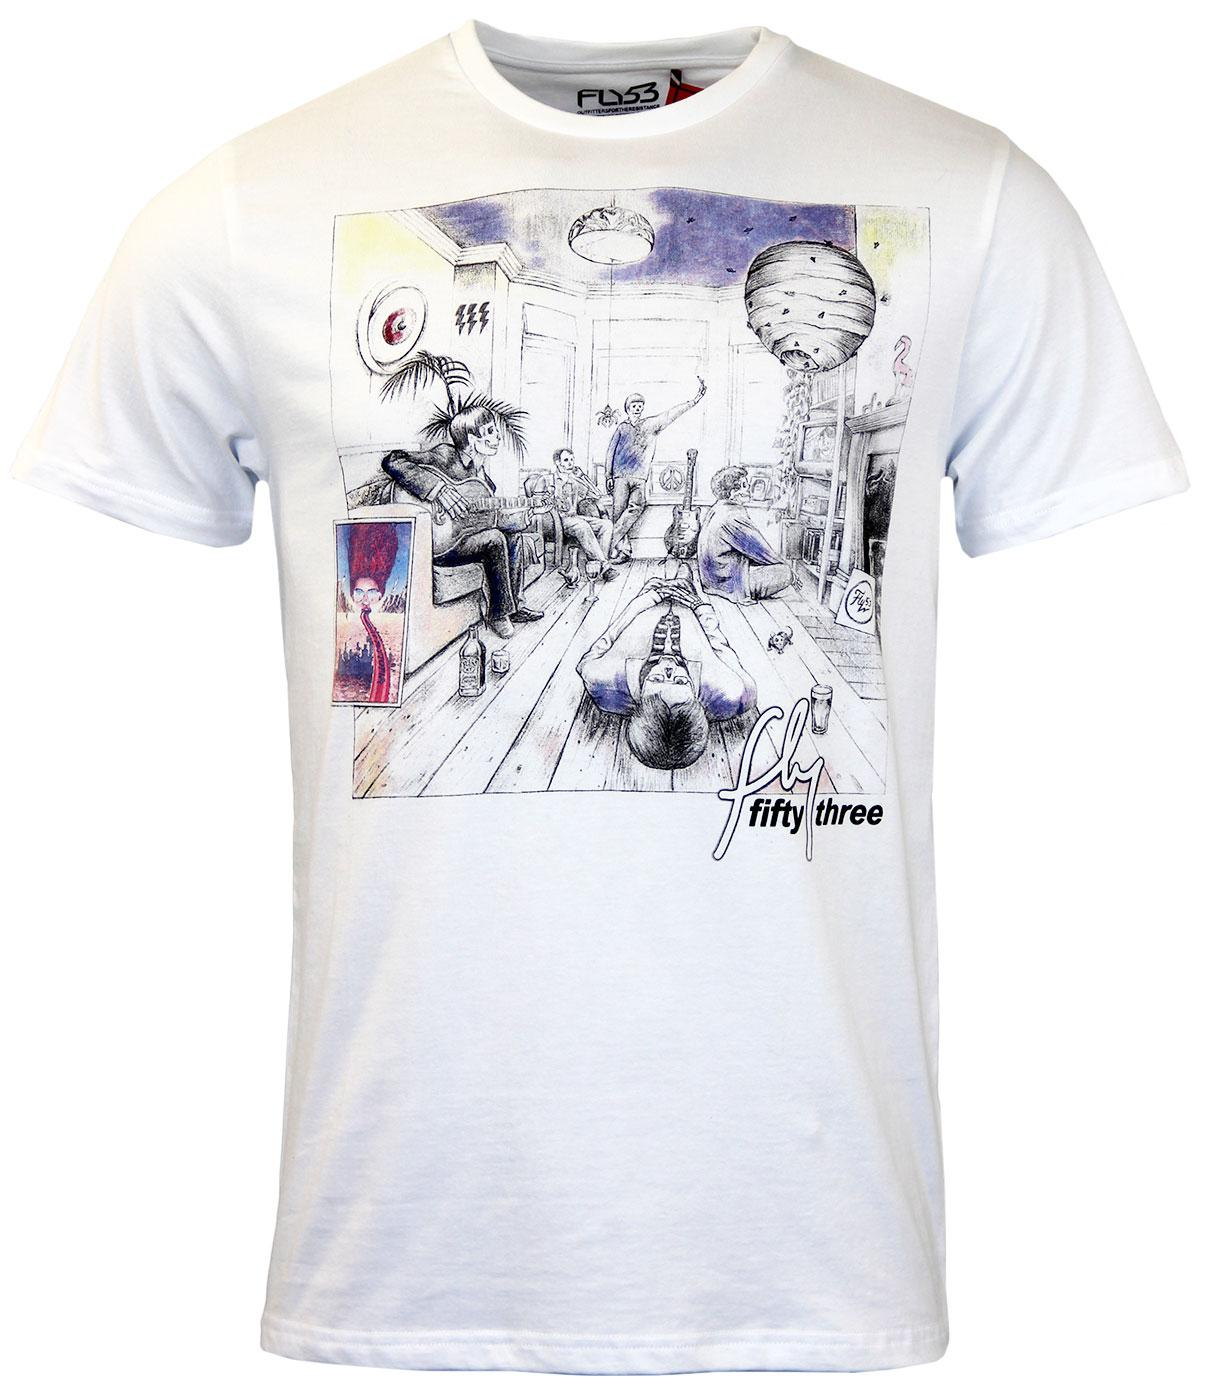 Super Smile FLY53 1990s Britpop Civil War T-shirt